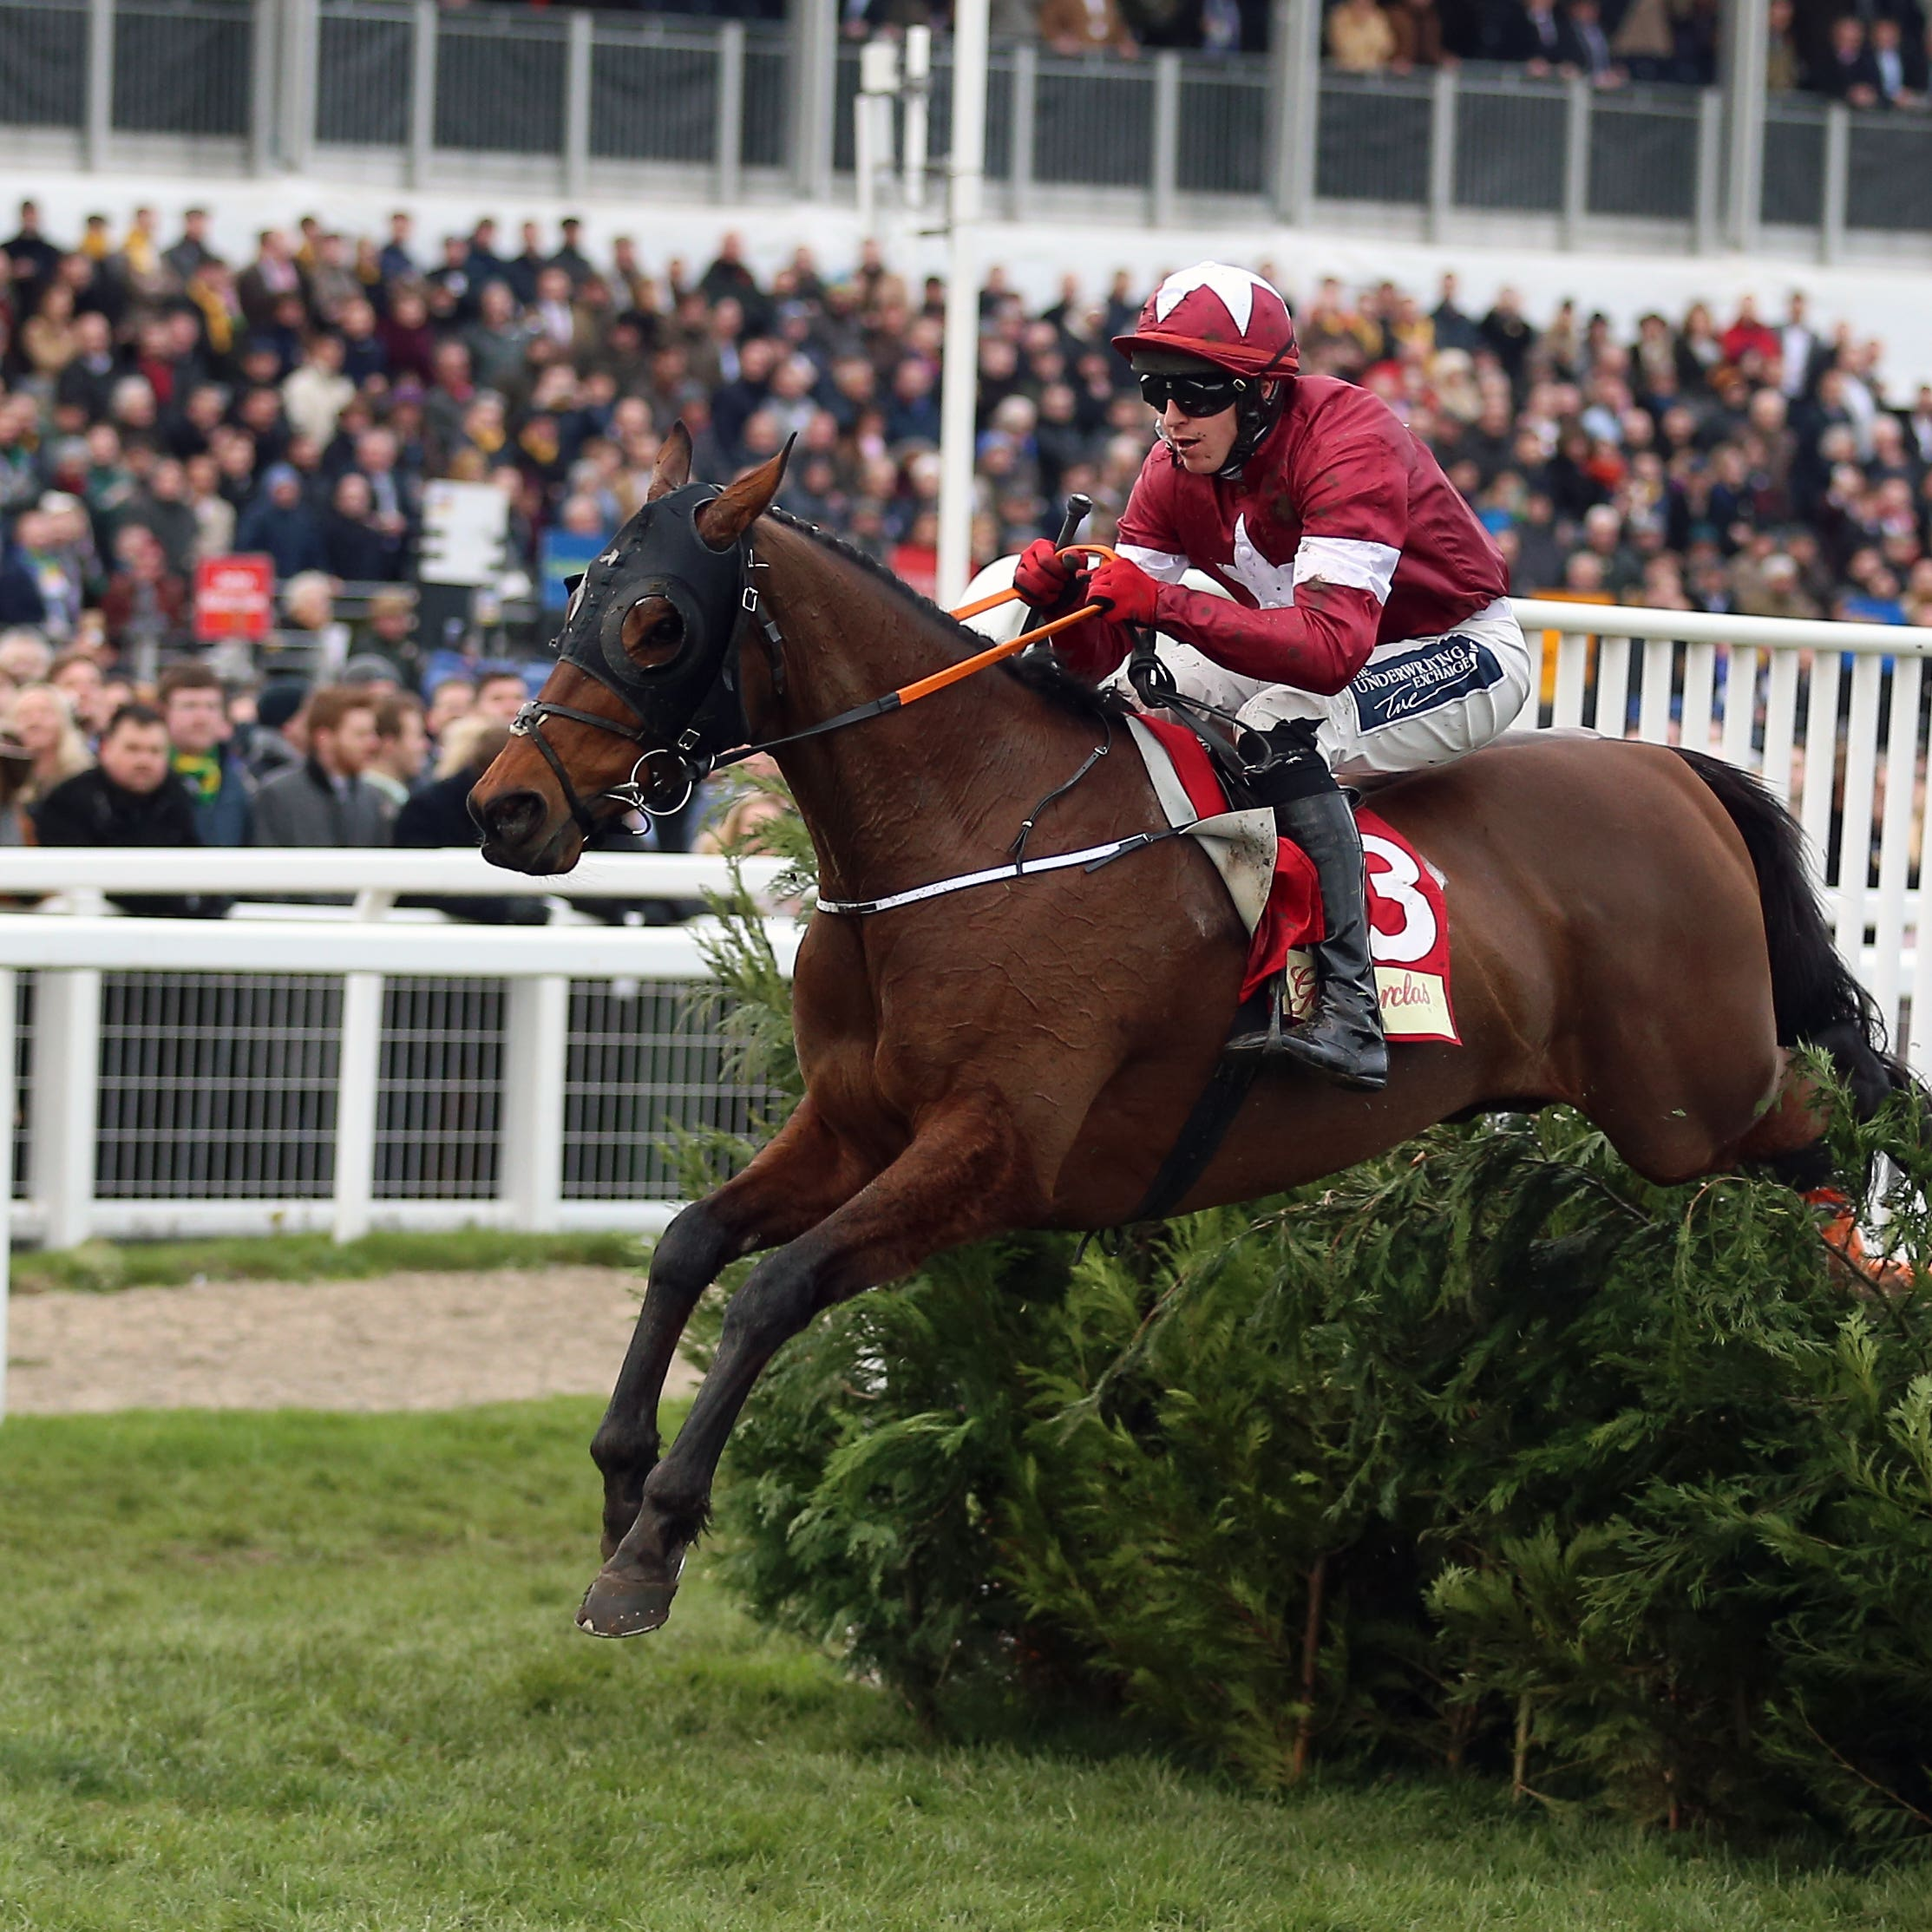 Tiger Roll won the Glenfarclas Chase at Cheltenham last week, for the second year running, by 22 lengths